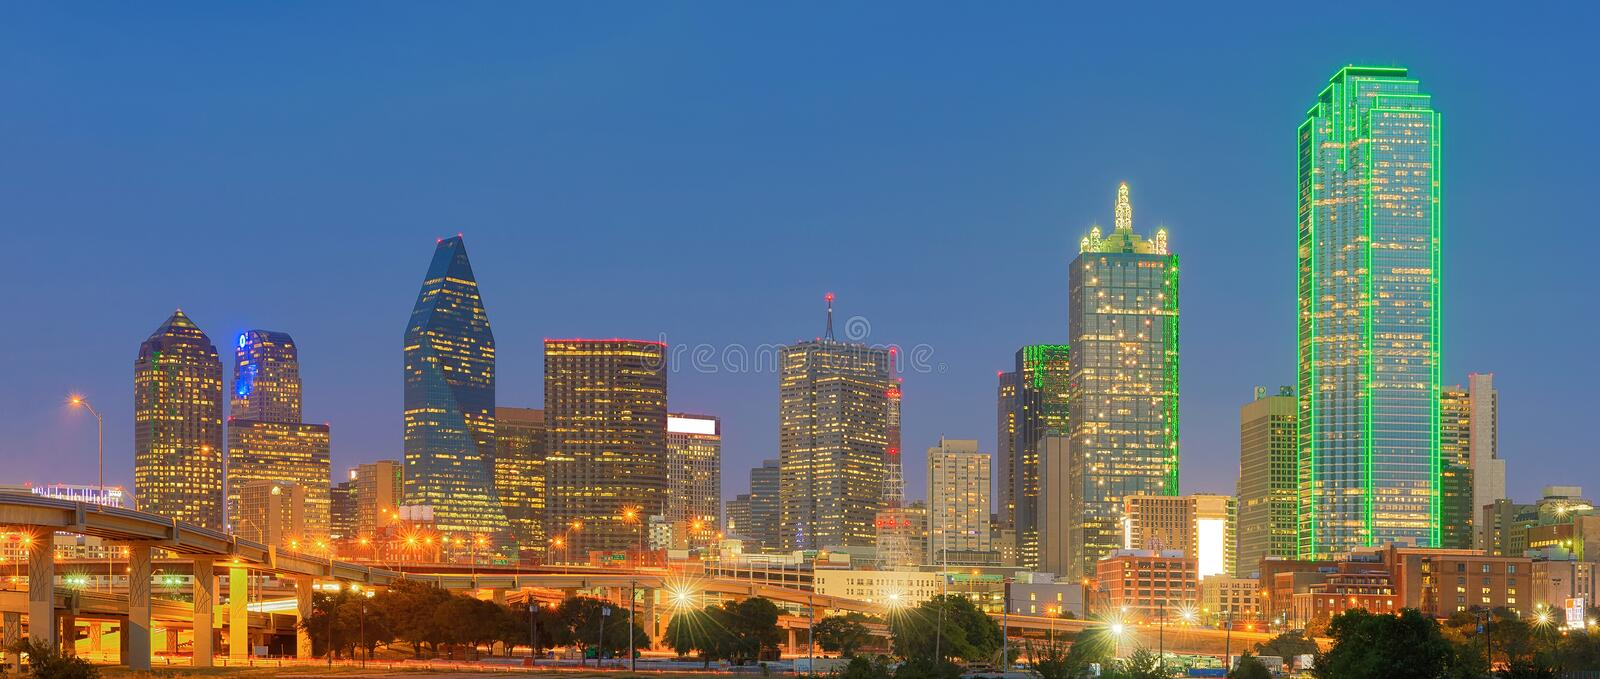 Dallas City du centre, le Texas, Etats-Unis photographie stock